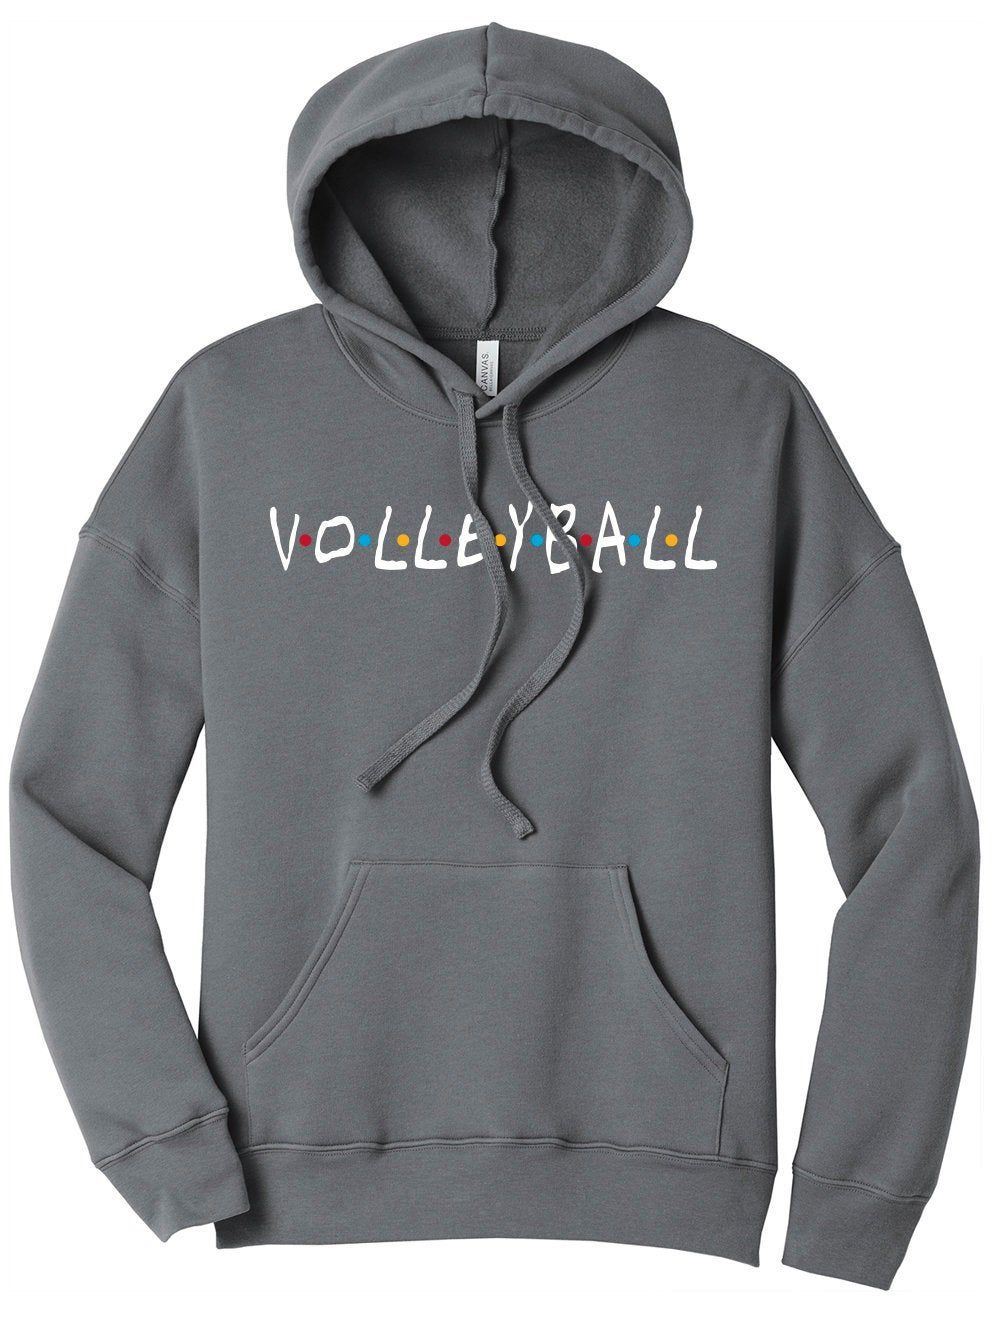 Friends Inspired Volleyball Themed Hoodie Crop Hoodie Long Etsy In 2020 Volleyball Outfits Volleyball Workouts Volleyball Inspiration